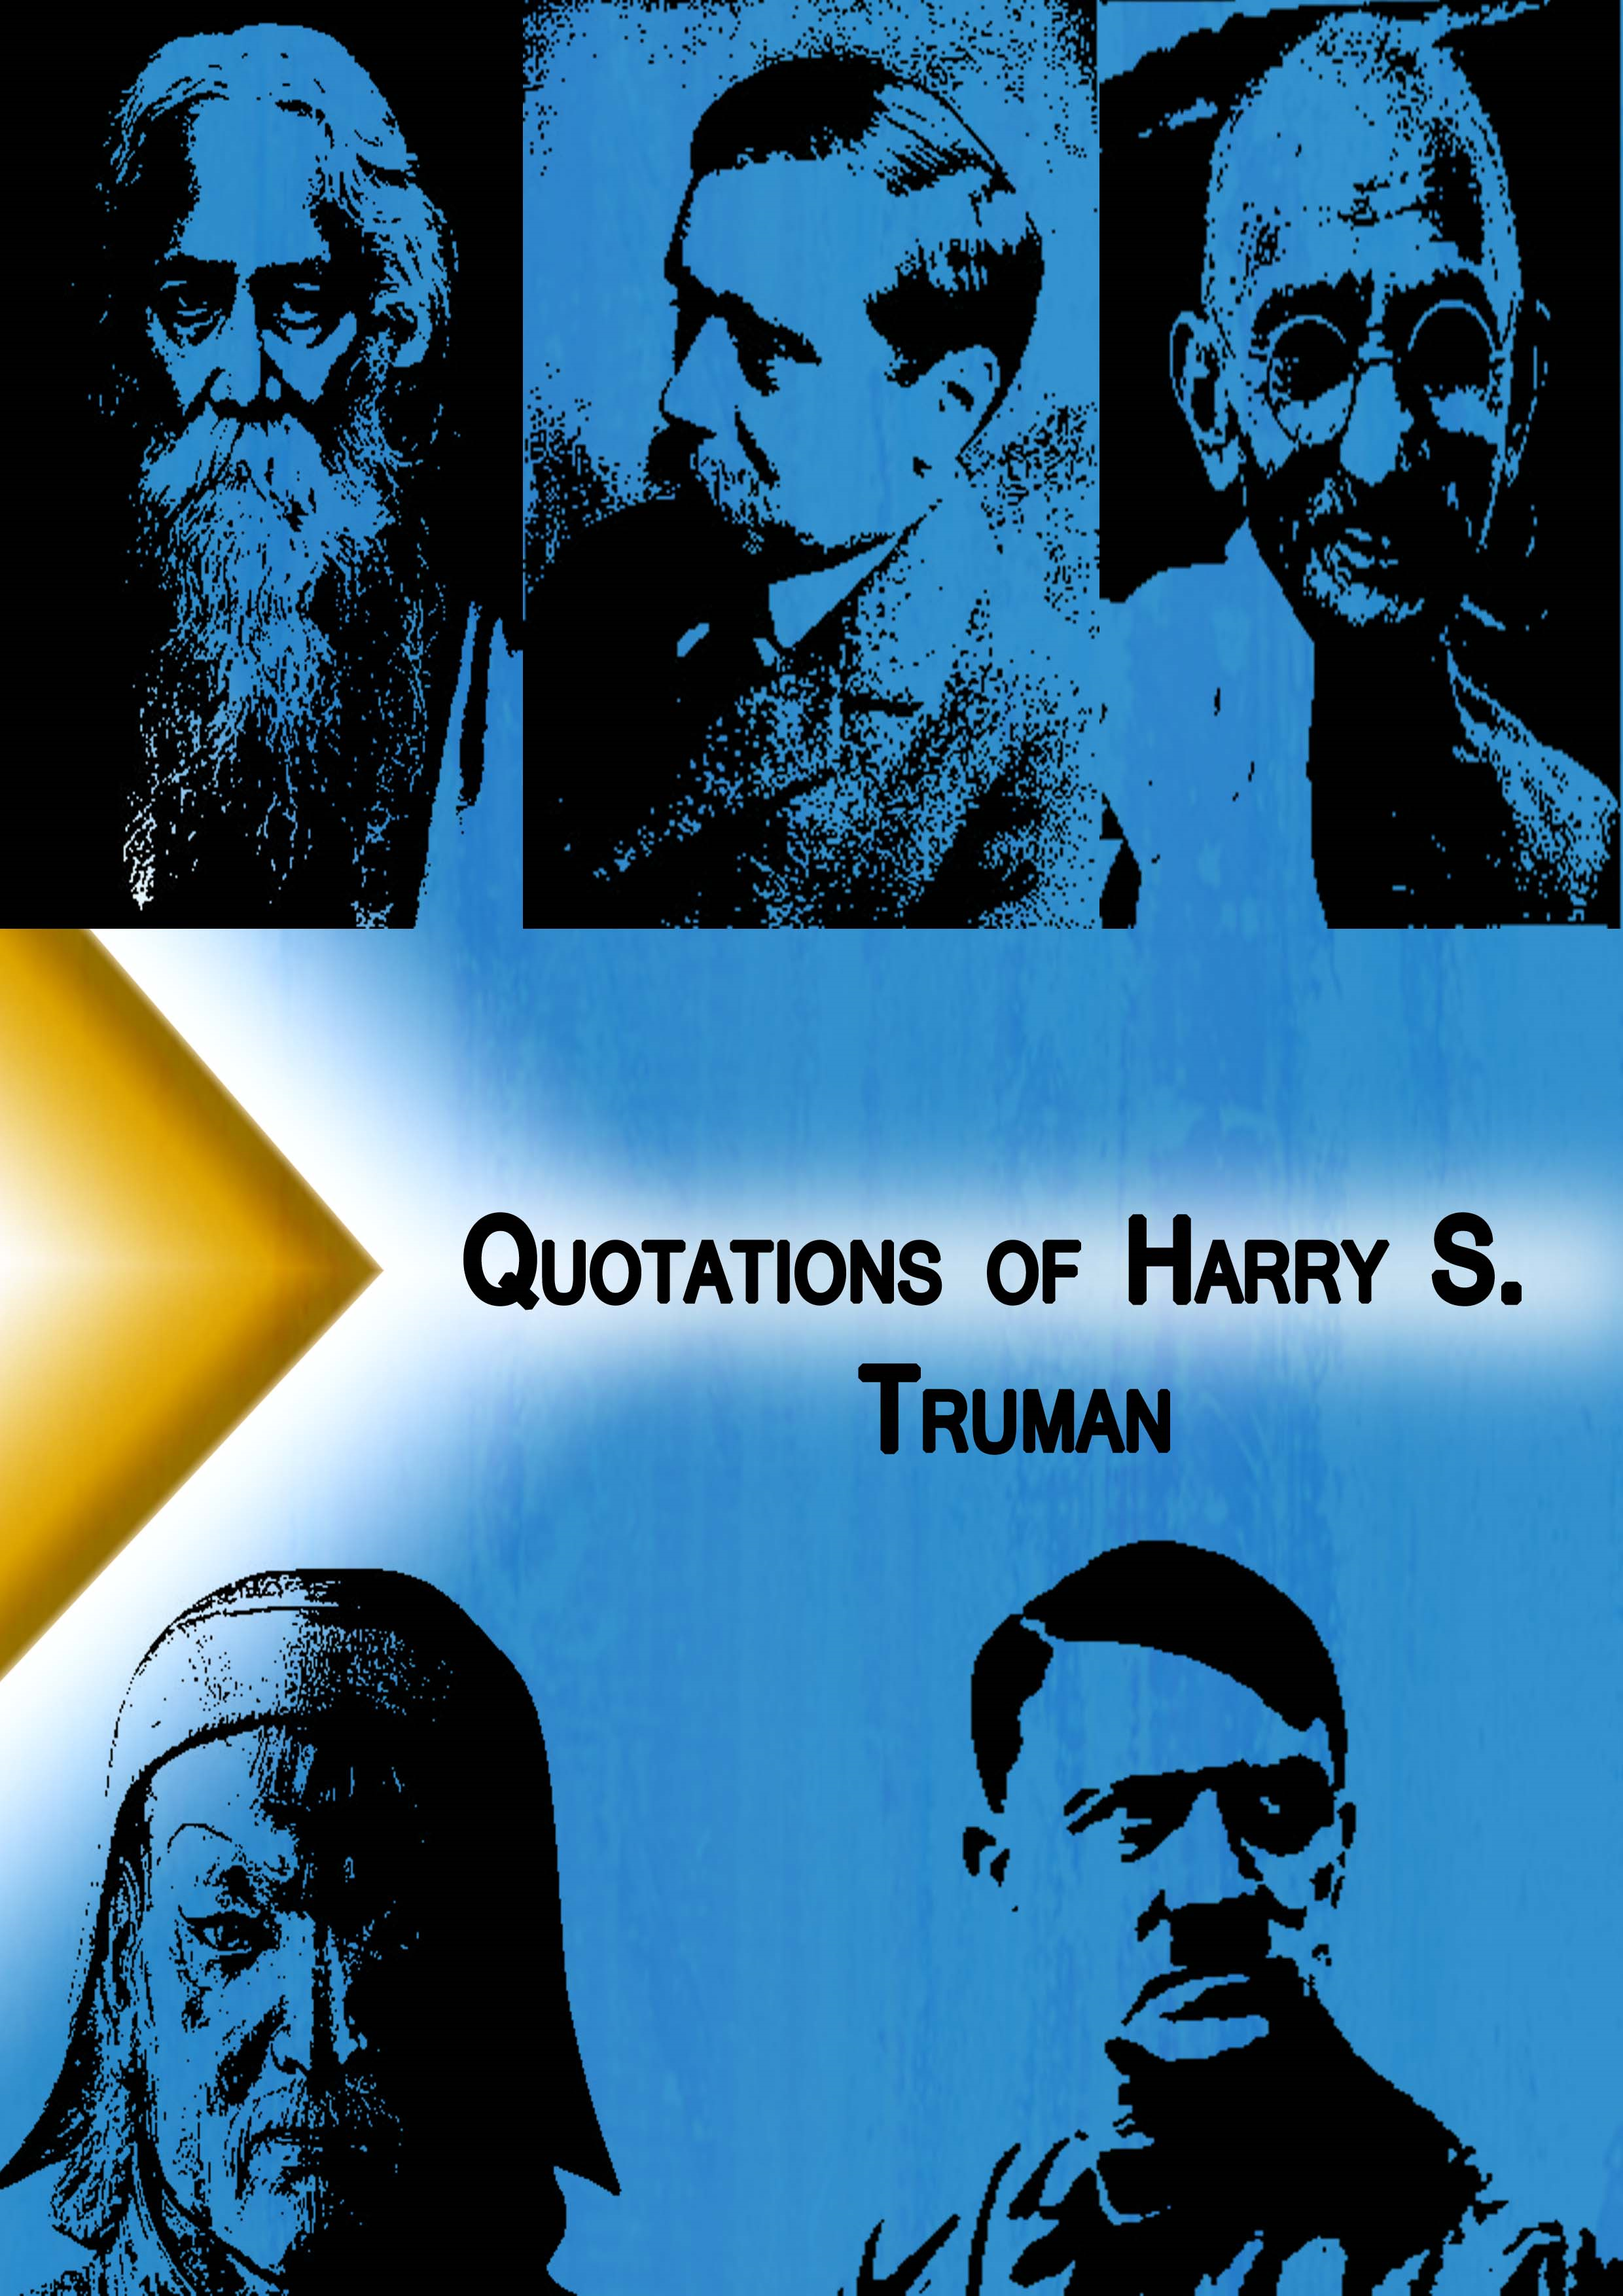 Qoutations of Harry S. Truman